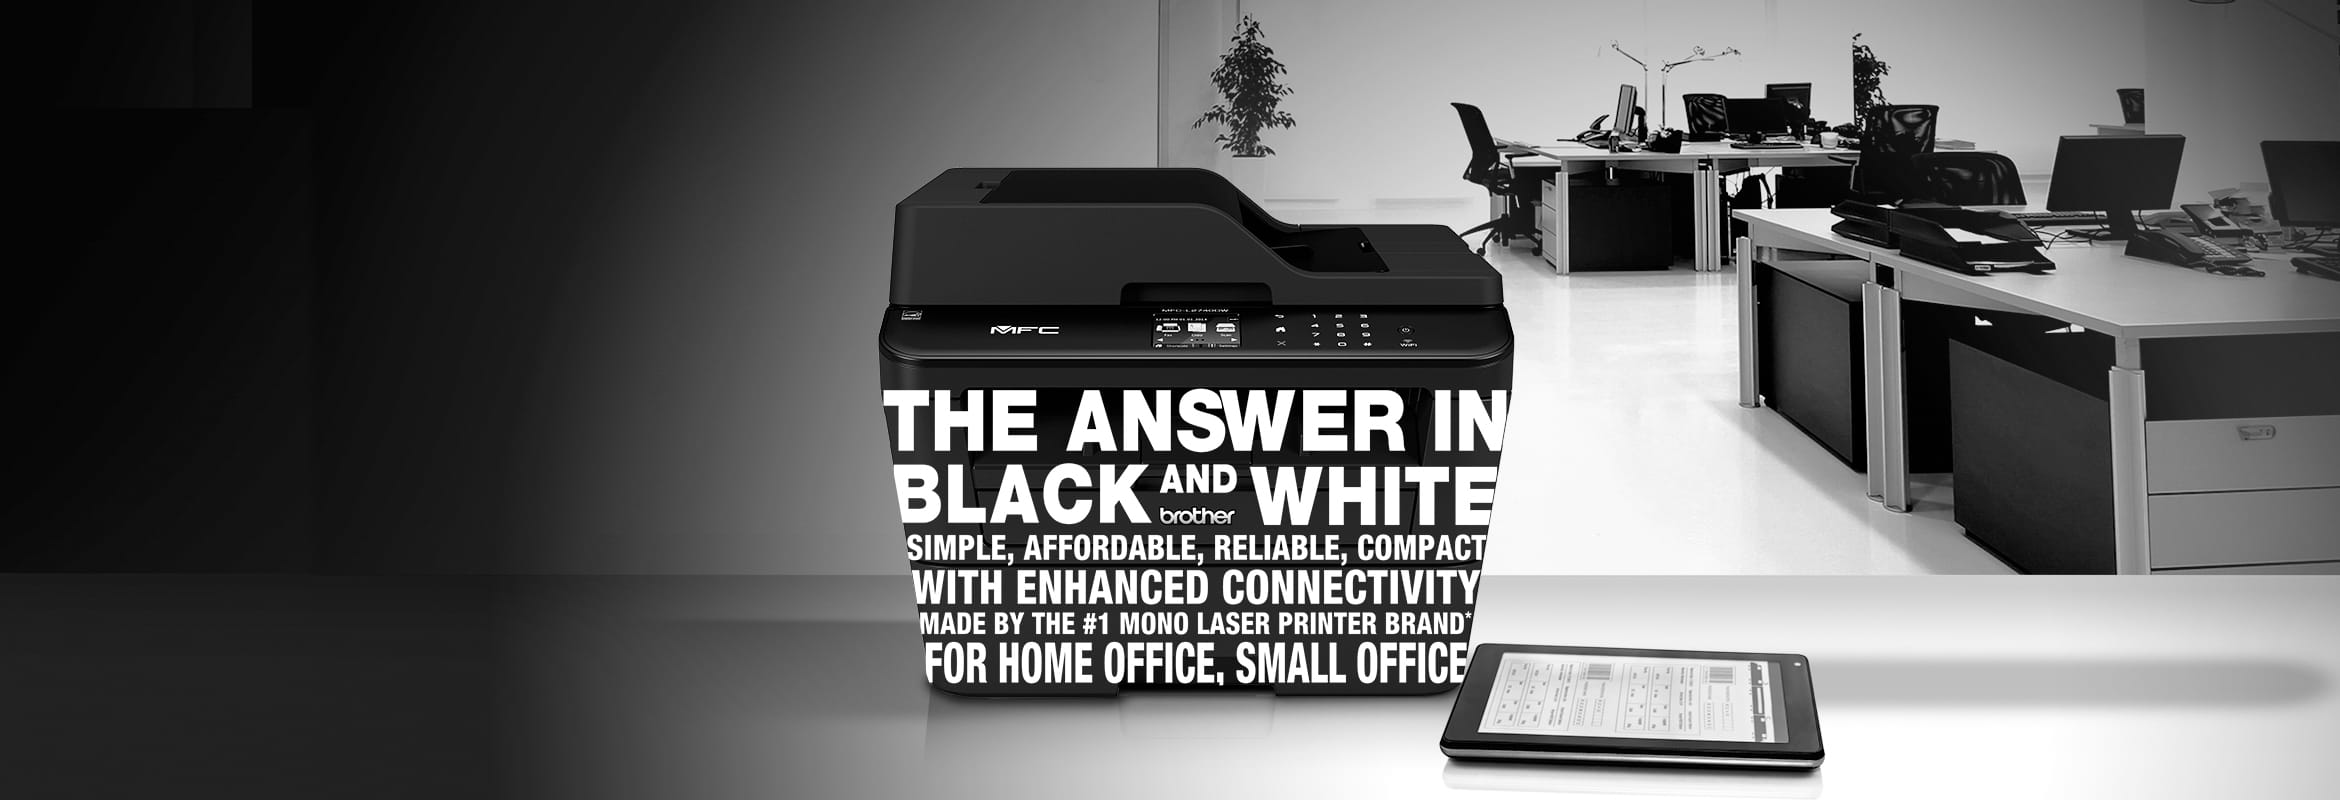 The answer in black and white. Simple, Affordable, reliable, compact with enhanced connectivity. made by Brother, the number one mono laser printer brand. For home office and small office.